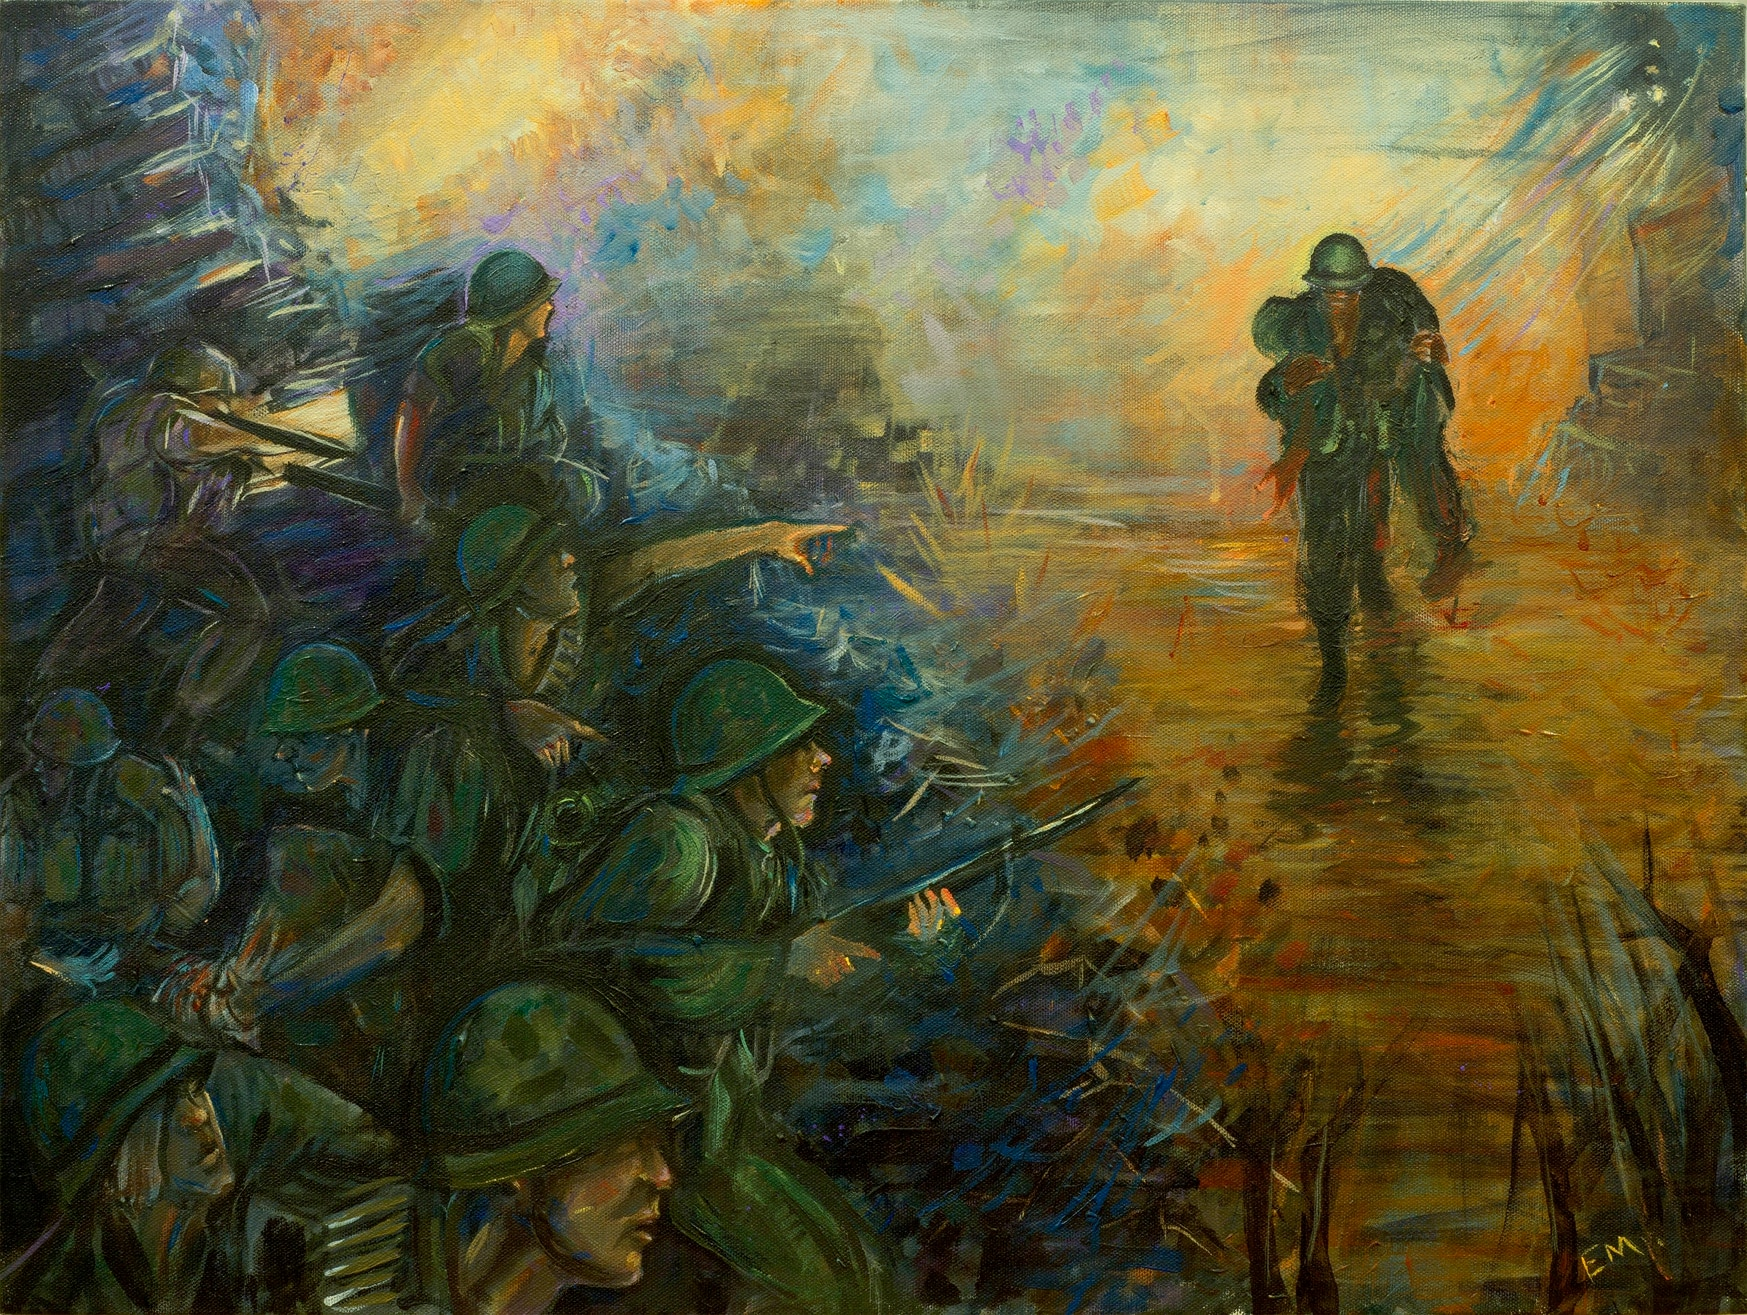 Sgt. Elize McKelvey painted this piece of then-Gunnery Sgt. John Canley during a battle in Hue City, Vietnam, that later garnered him the Medal of Honor. (Sgt. Elize McKelvey/Marine Corps)